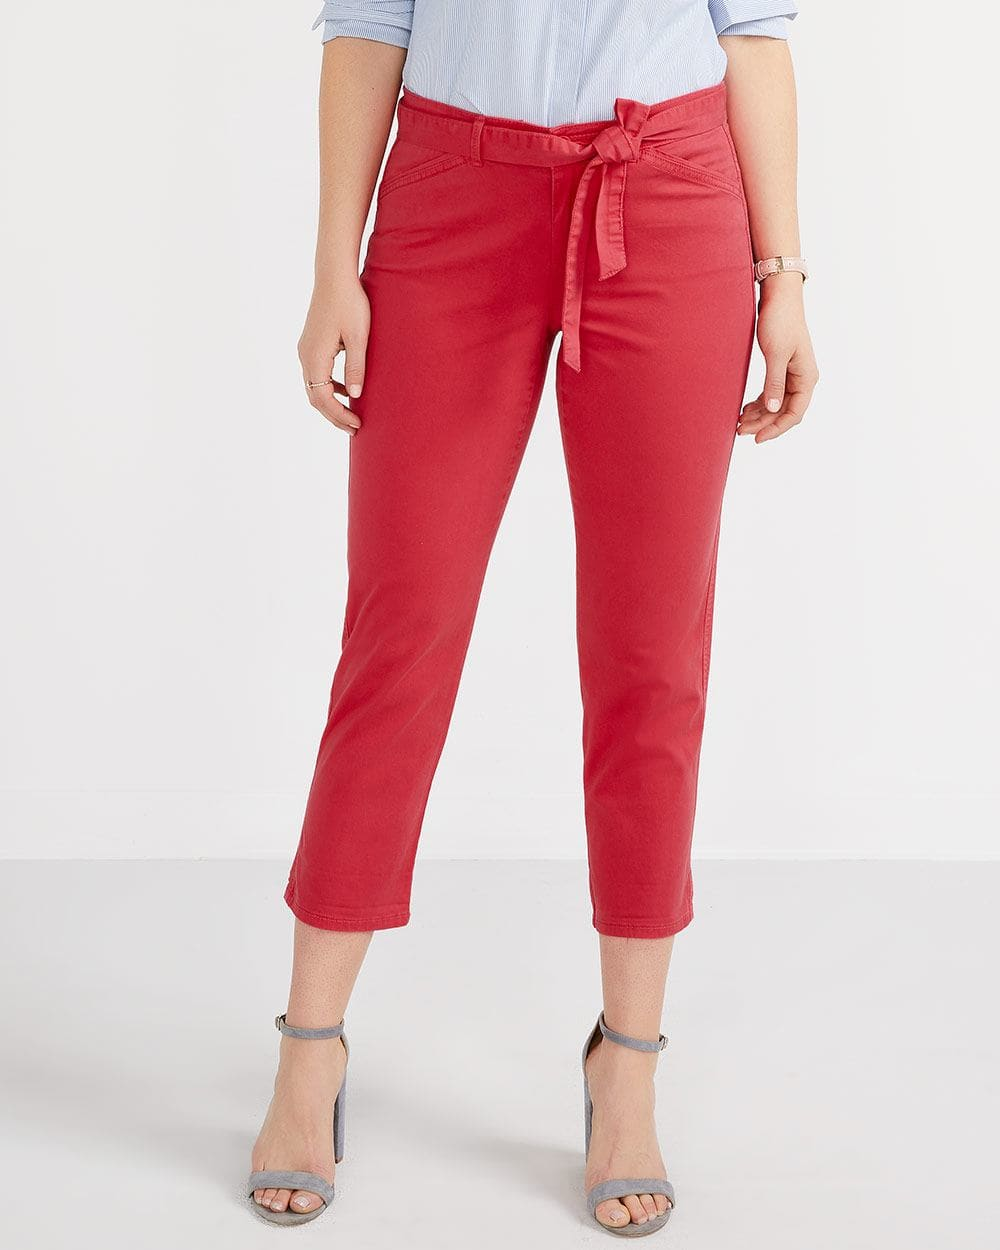 The Belt Cropped Chino